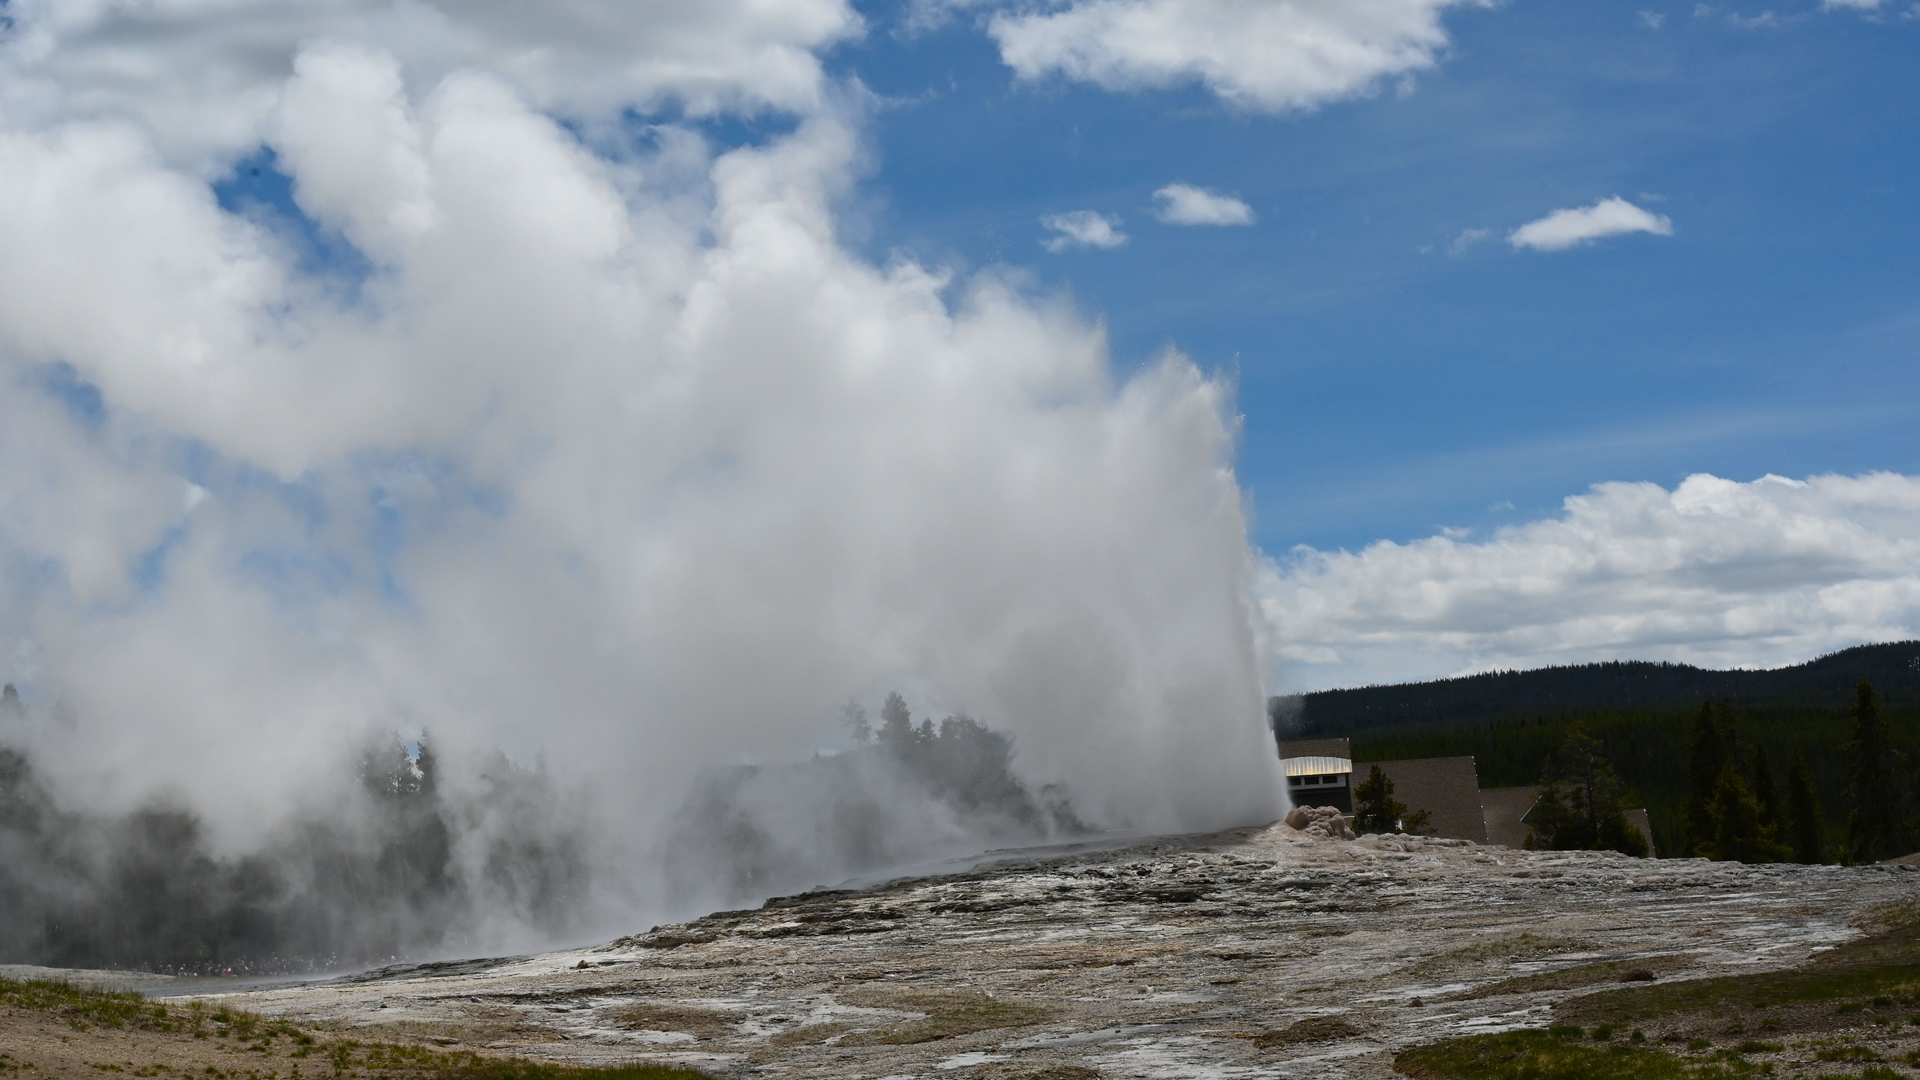 Old Faithful geyser erupts in Yellowstone National Park on June 11, 2019. (Credit:DANIEL SLIM/Getty)